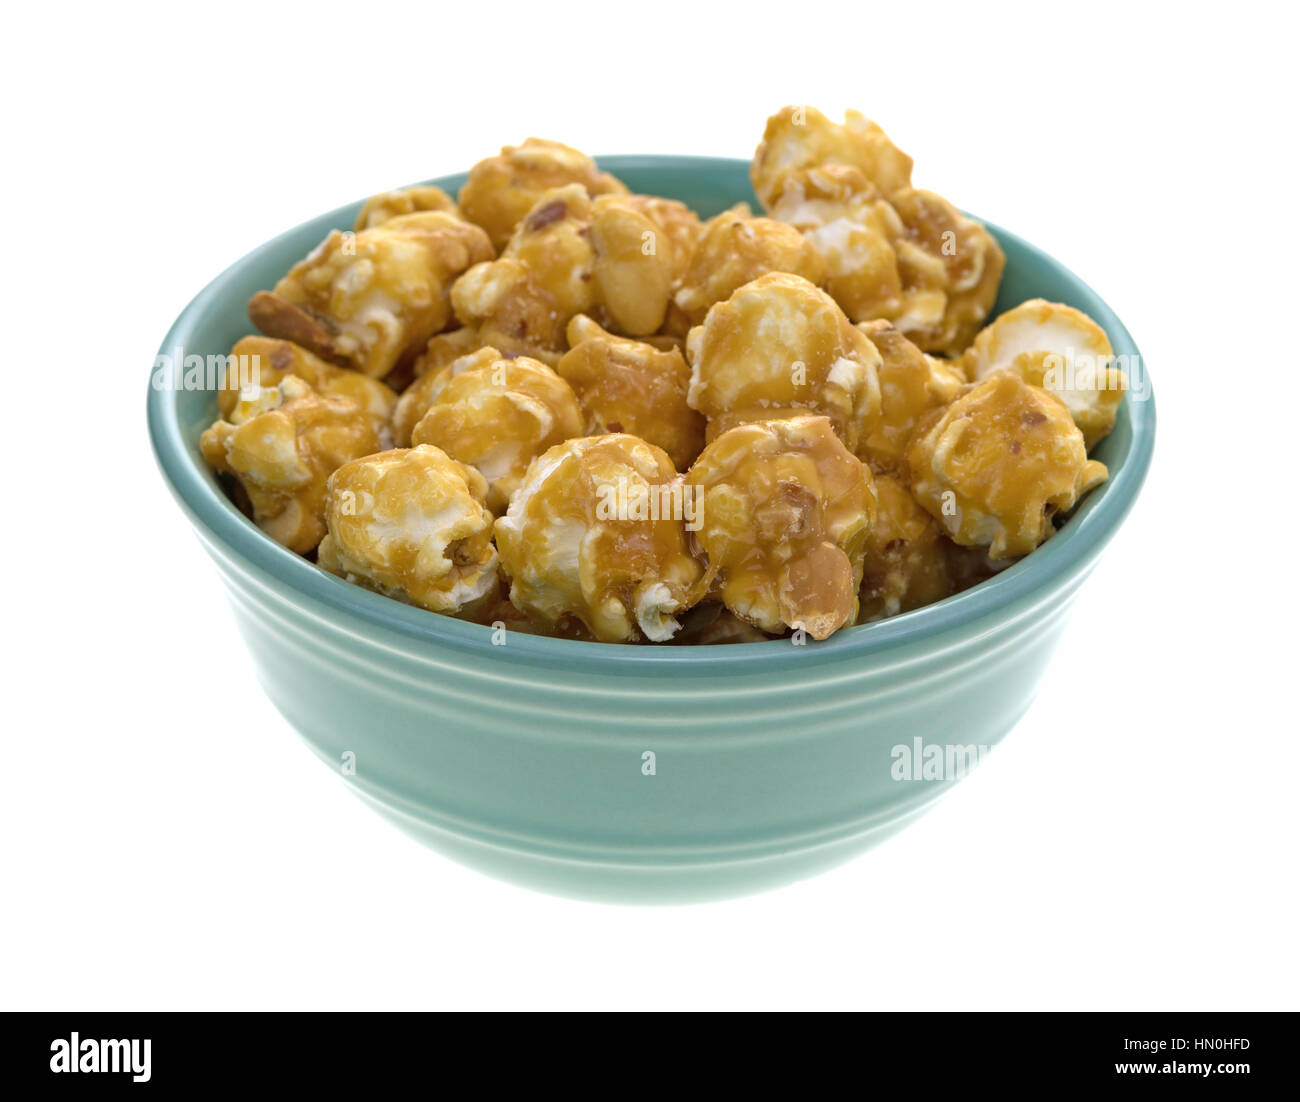 A green bowl filled with toffee caramel popcorn with nuts isolated on a white background. - Stock Image